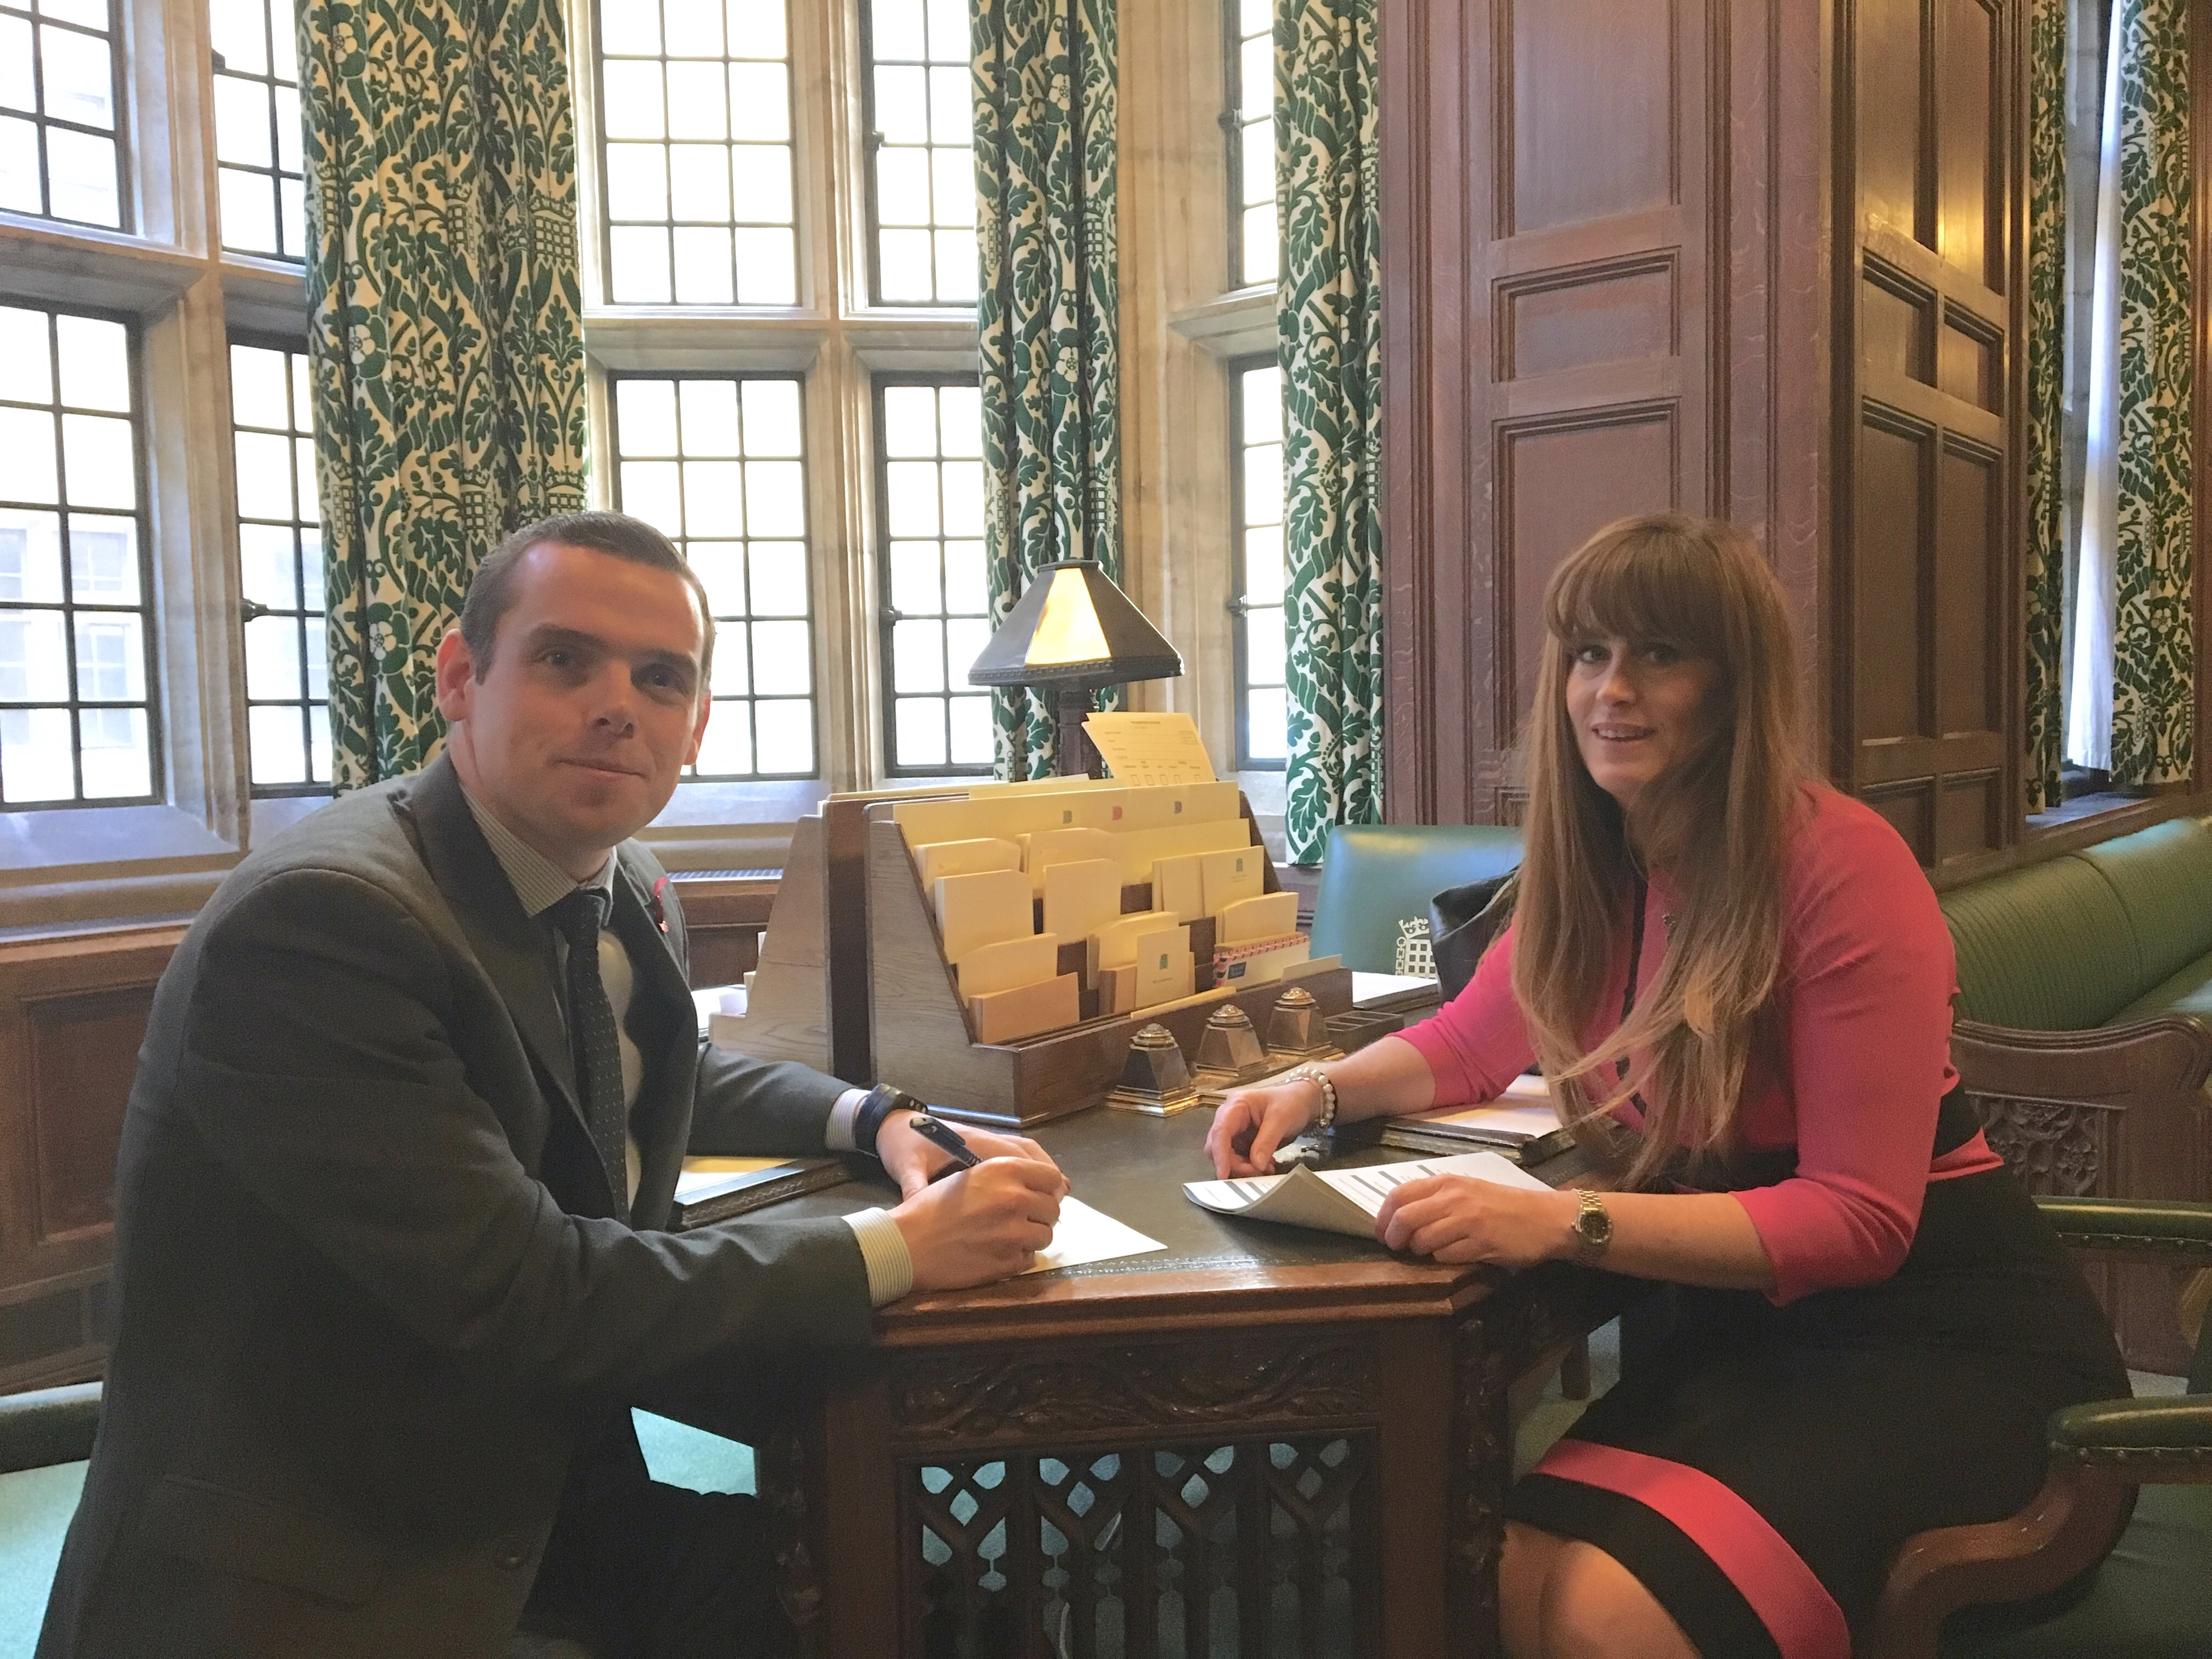 Douglas Ross MP met with Small Business and Consumer Protection Minister Kelly Tolhurst MP.